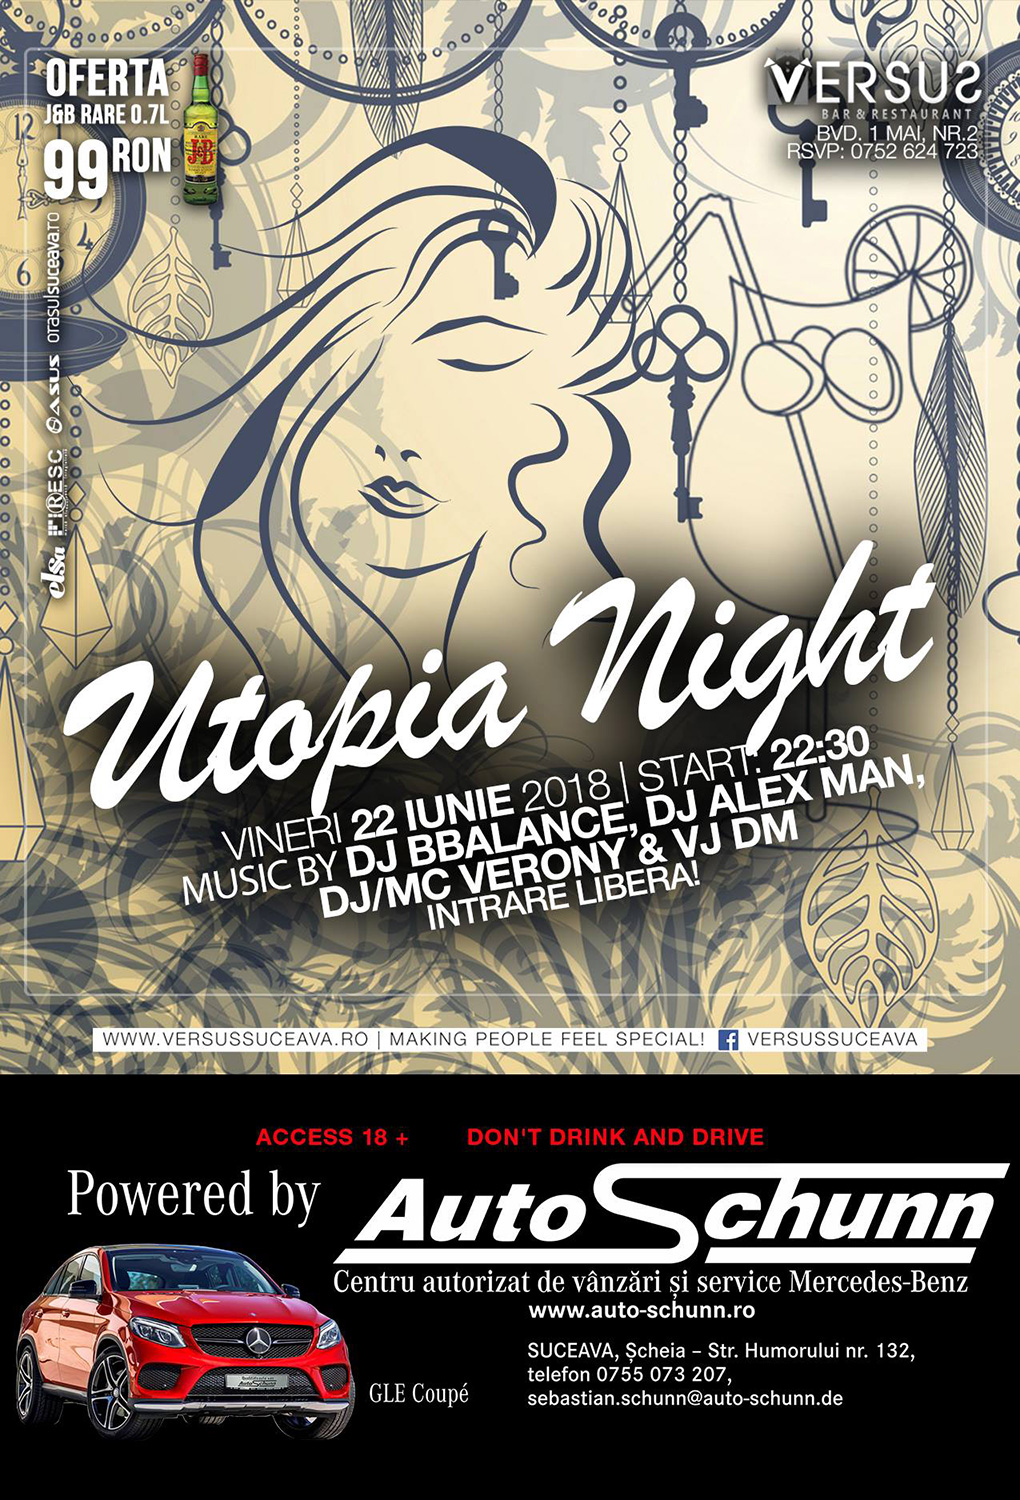 Utopia Night